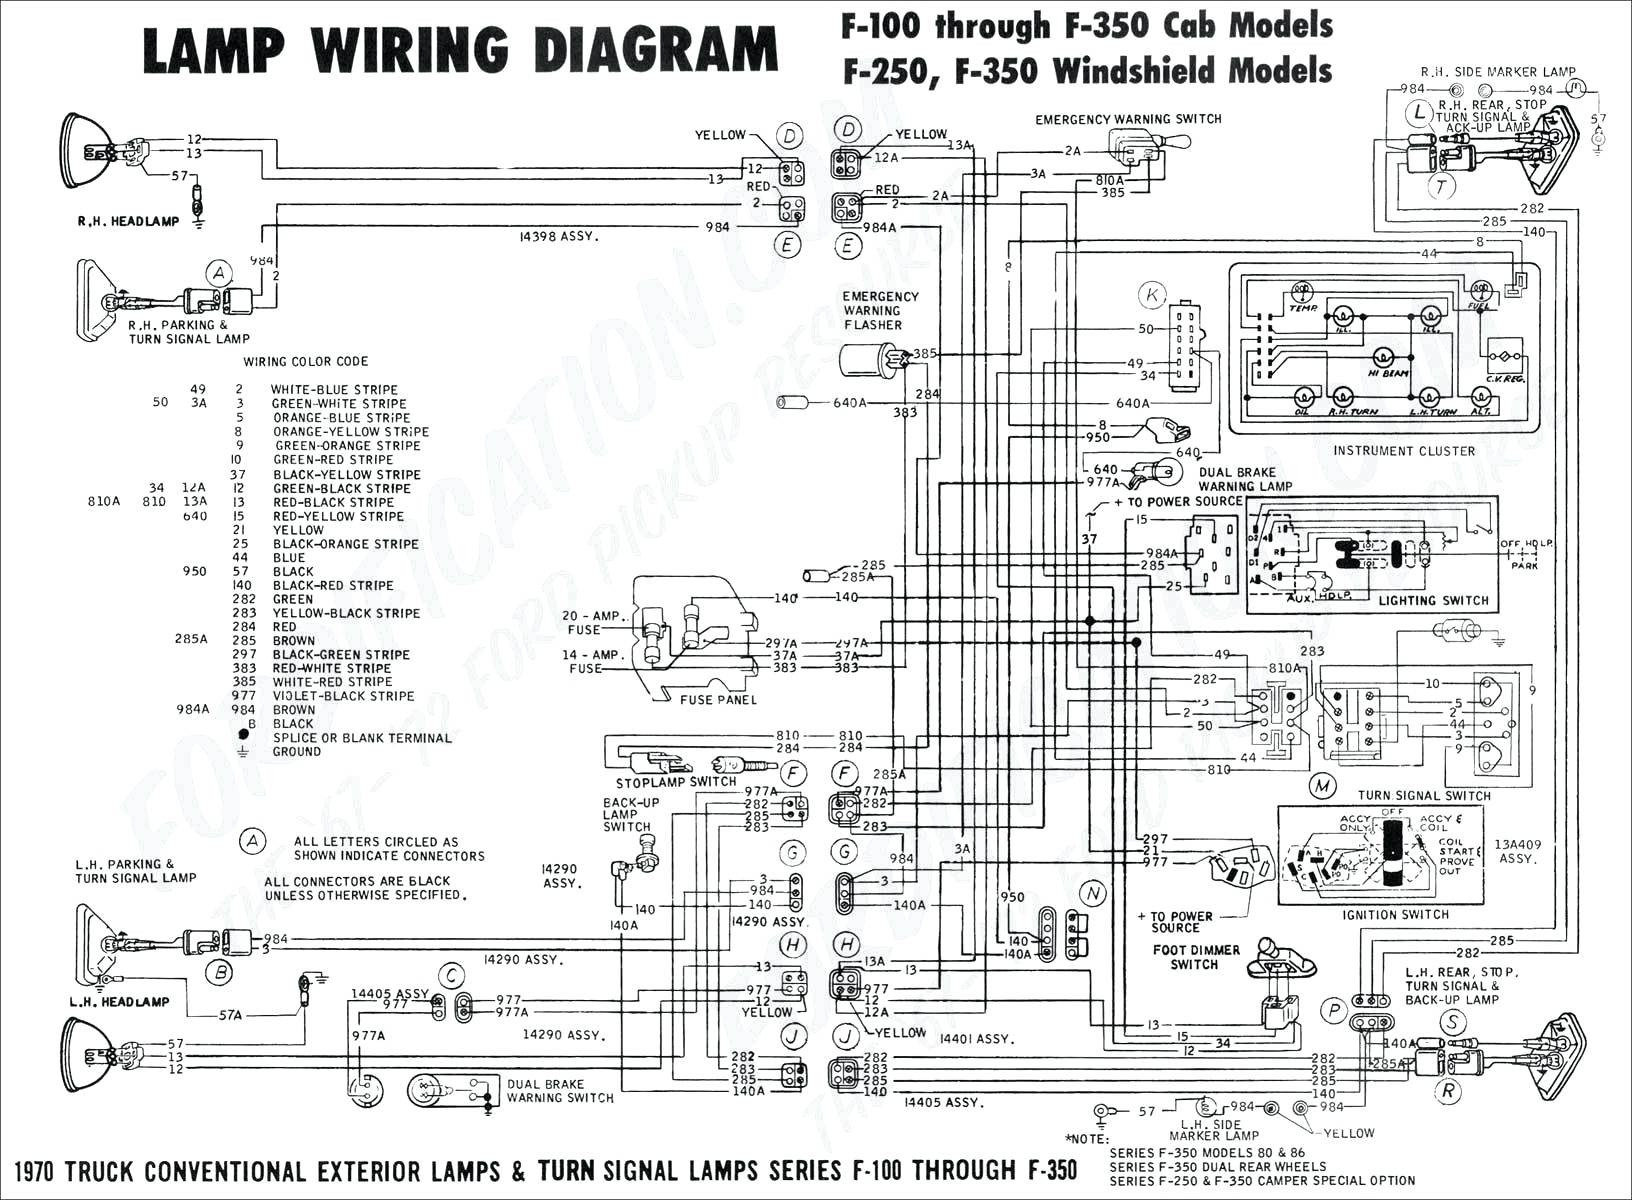 2001 f250 trailer wiring diagram Download-2005 Chevy Silverado Trailer Wiring Diagram Ford Resize Gmc Ideas With F250 Plug 9 20-q